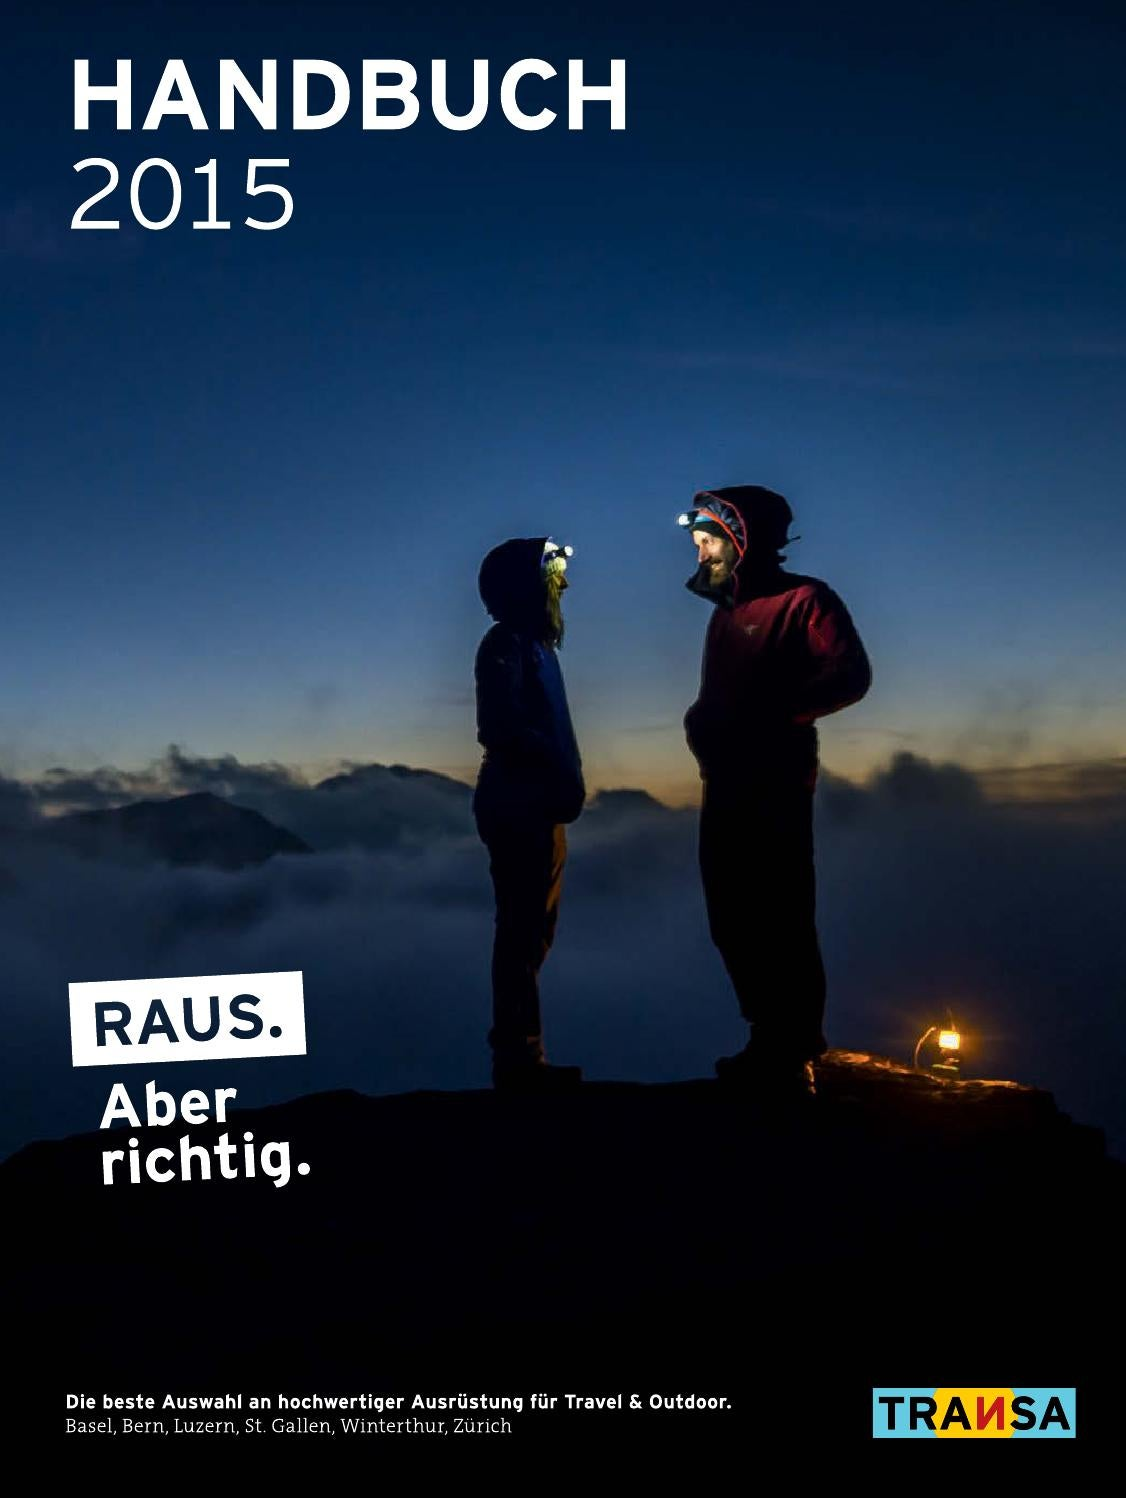 Transa Handbuch 2015 by Transa Travel & Outdoor issuu